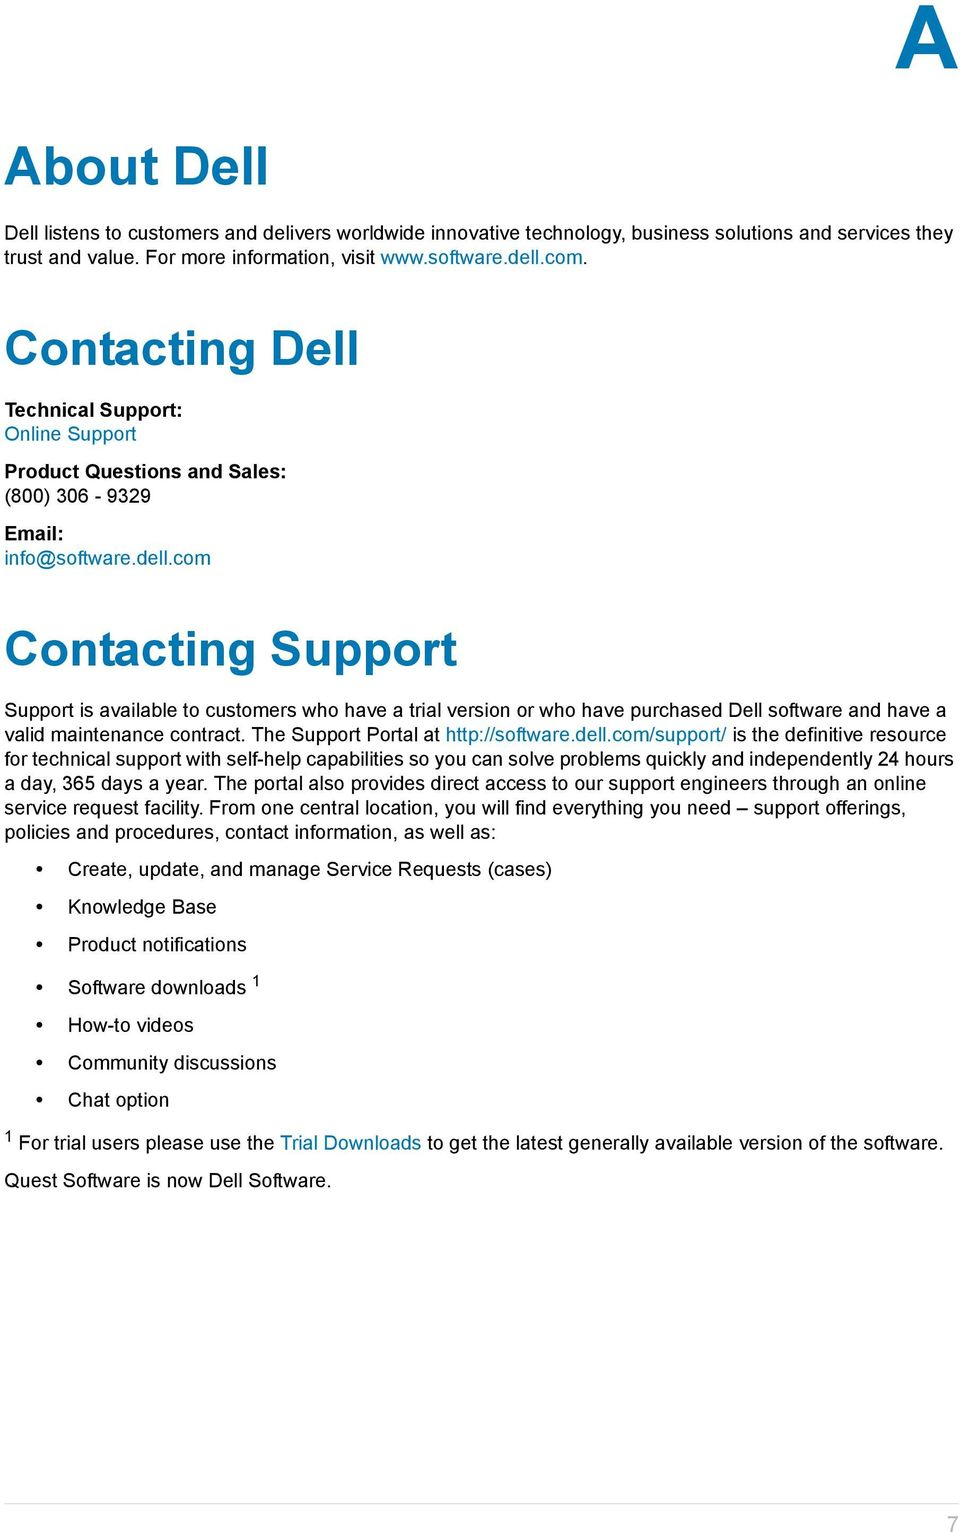 com Contacting Support Support is available to customers who have a trial version or who have purchased Dell software and have a valid maintenance contract. The Support Portal at http://software.dell.